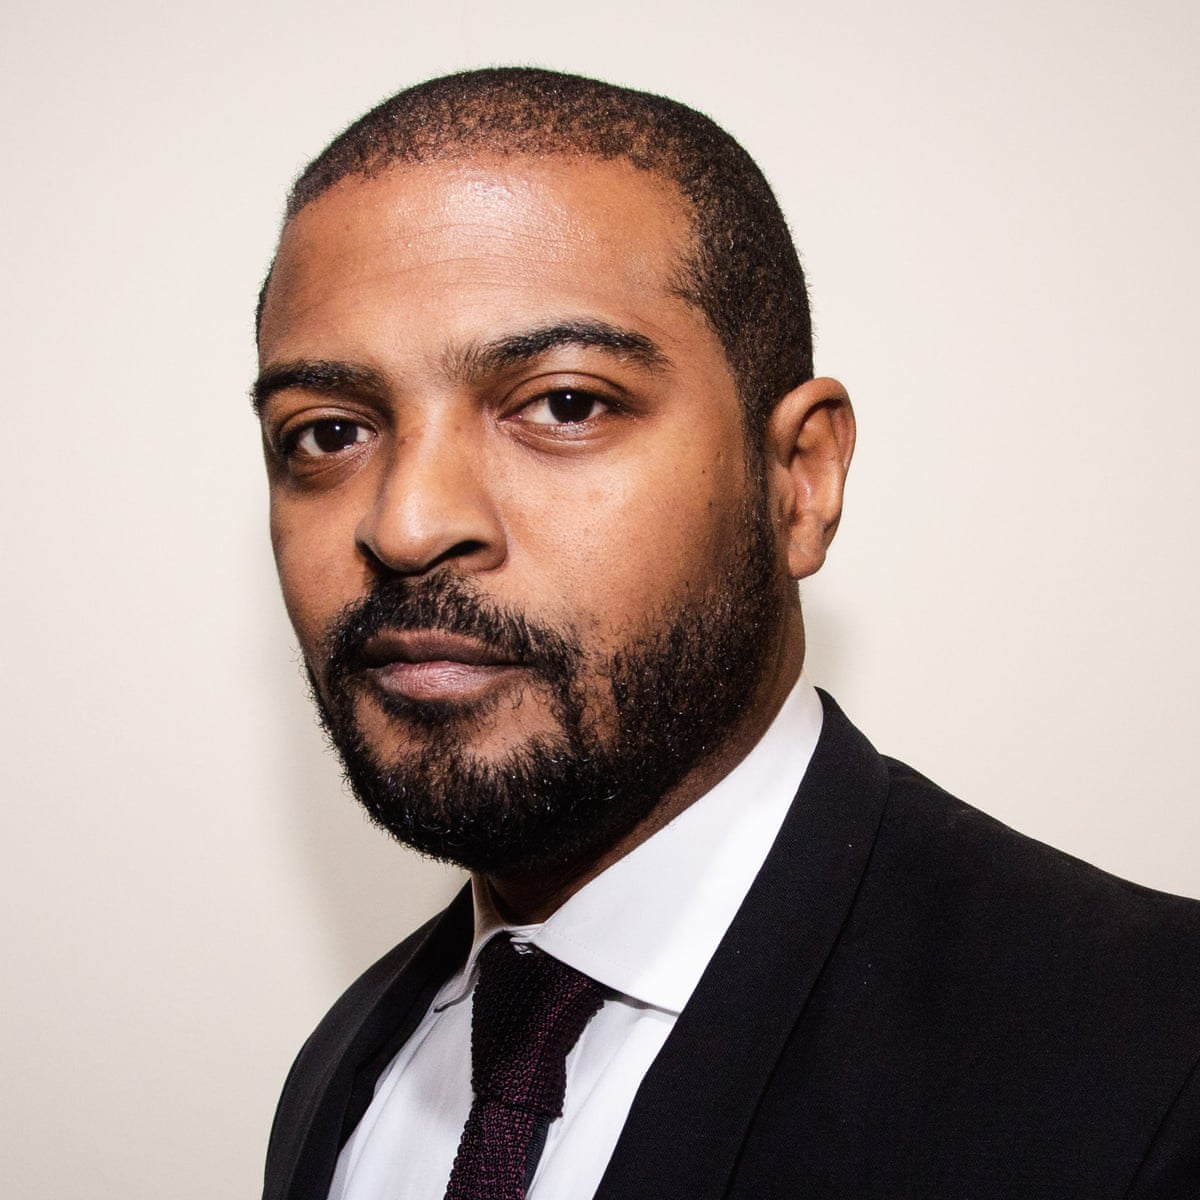 Movie star sends nude pics for threesome Sexual Predator Actor Noel Clarke Accused Of Groping Harassment And Bullying By 20 Women Noel Clarke The Guardian